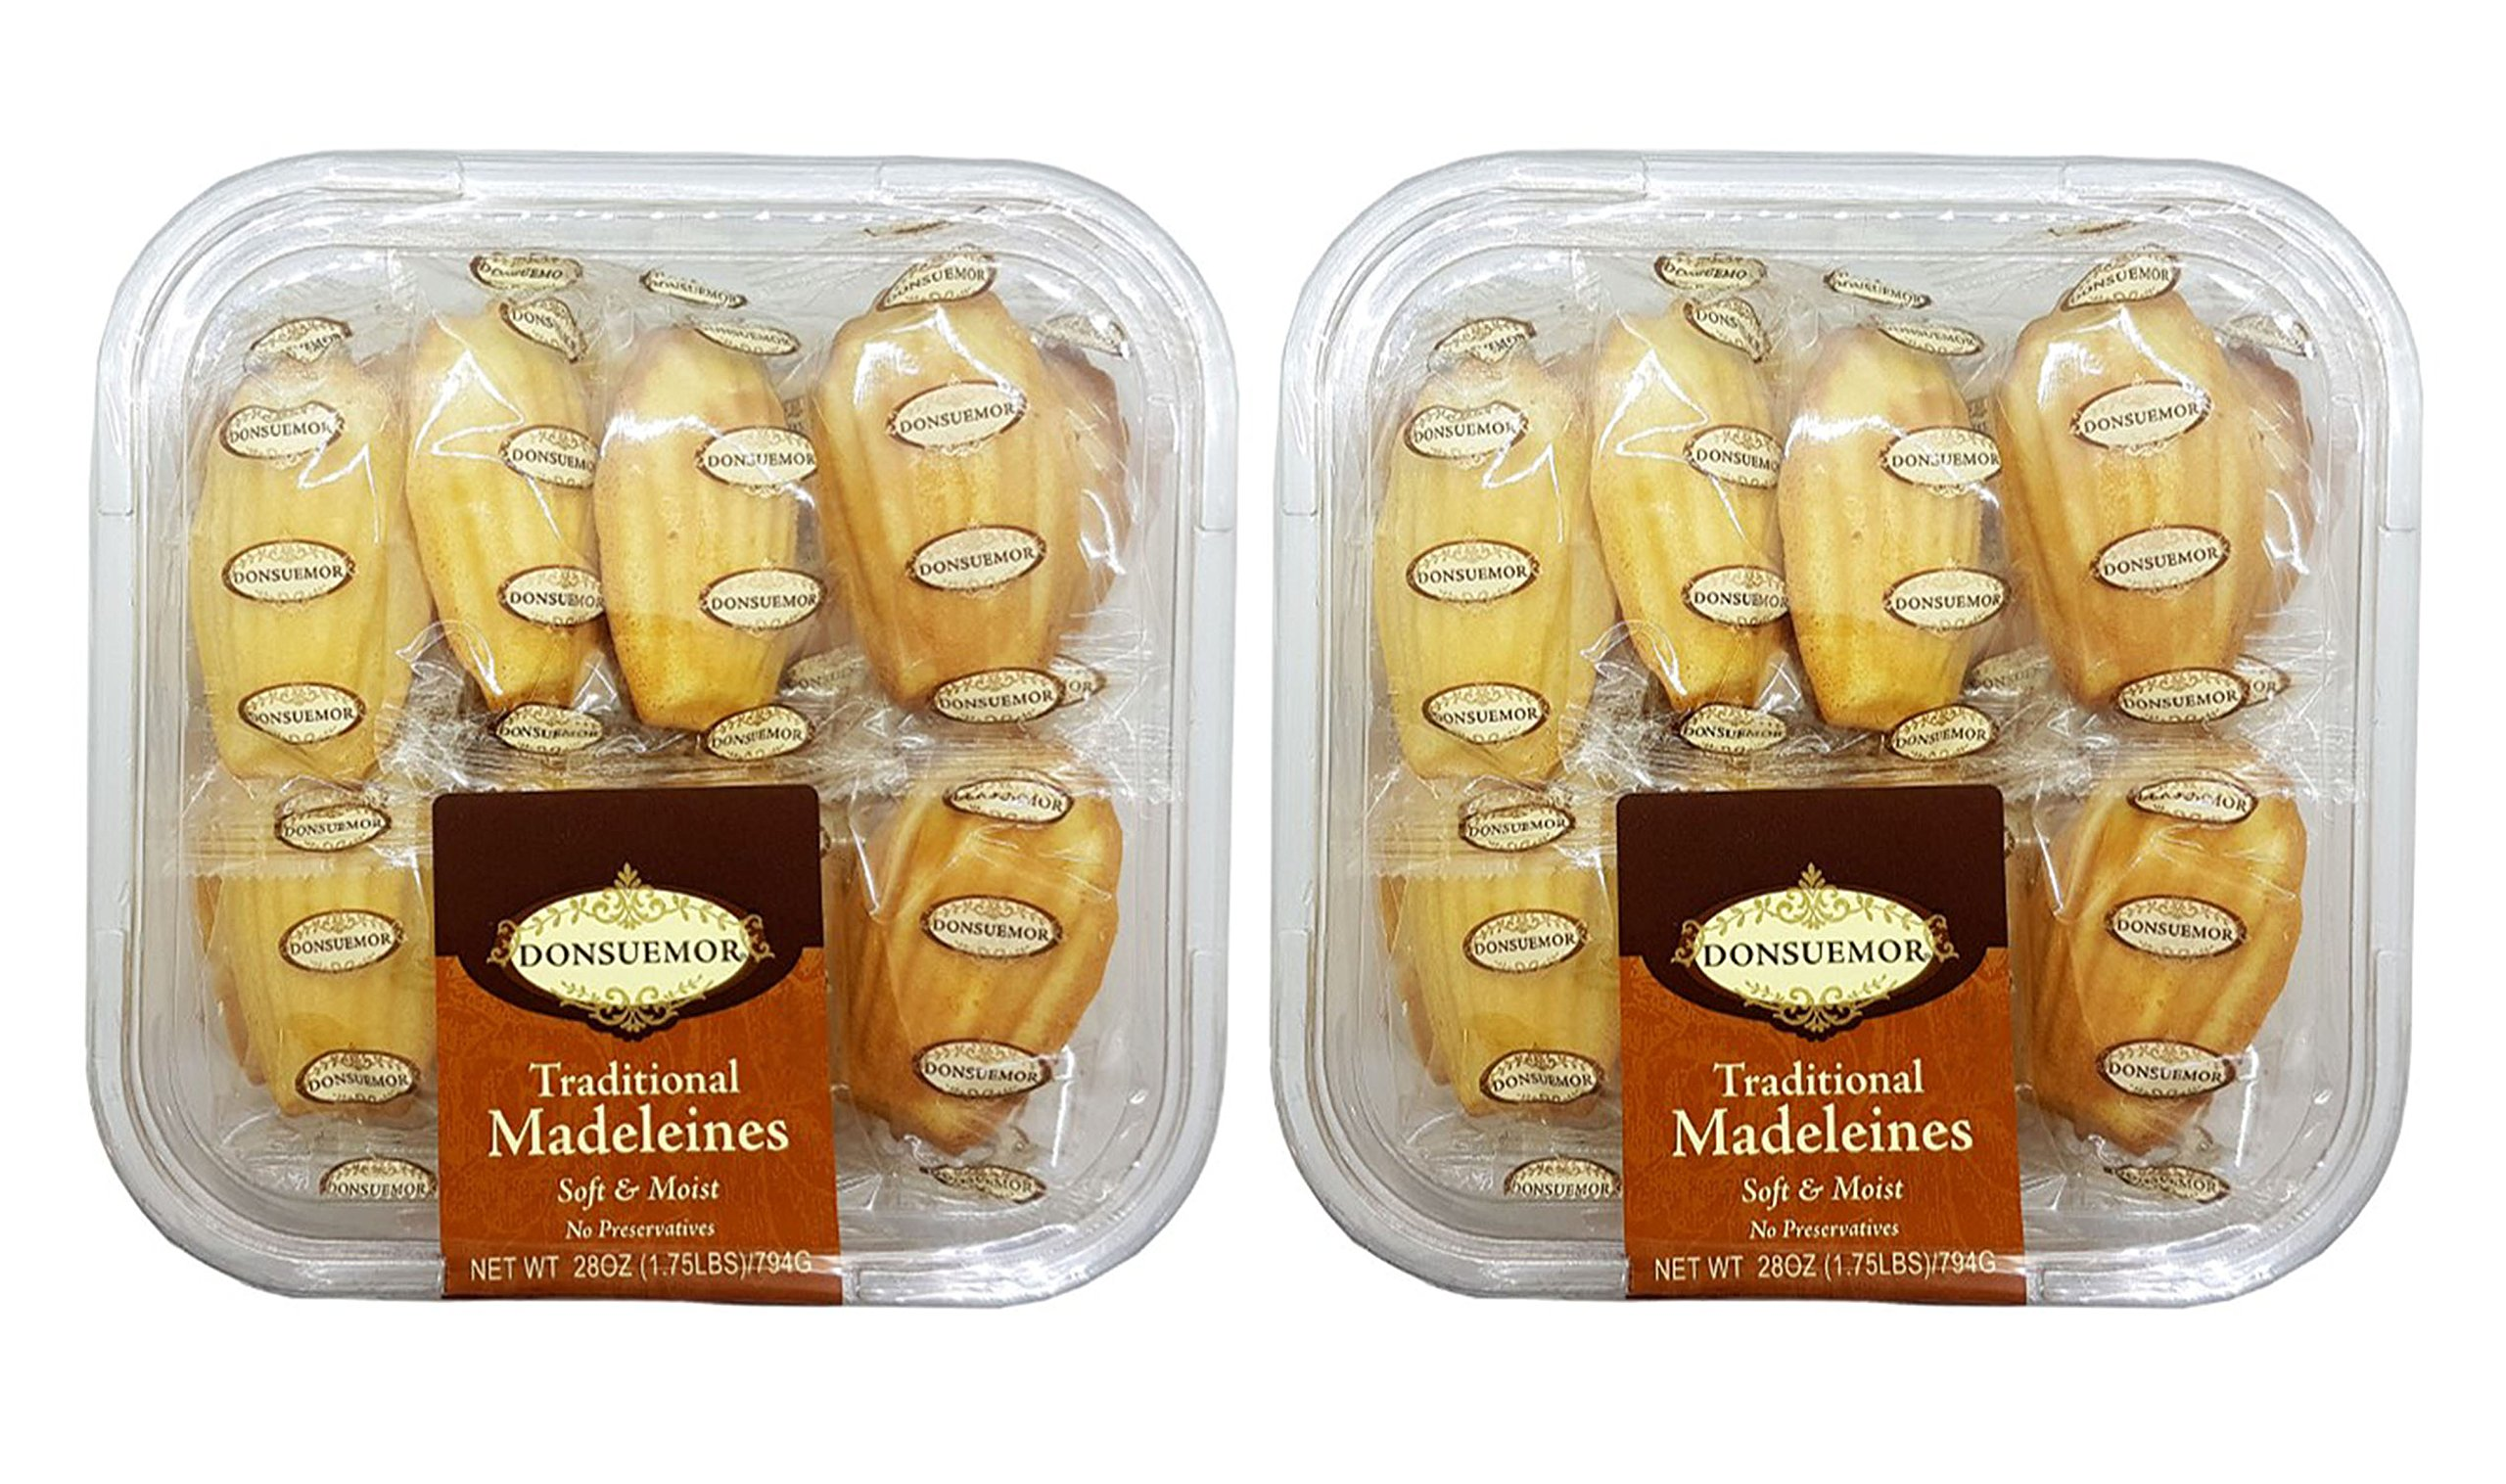 Donsuemor Traditional French Madeleines Individually Wrapped - 28 Oz. Each (Pack of 2)